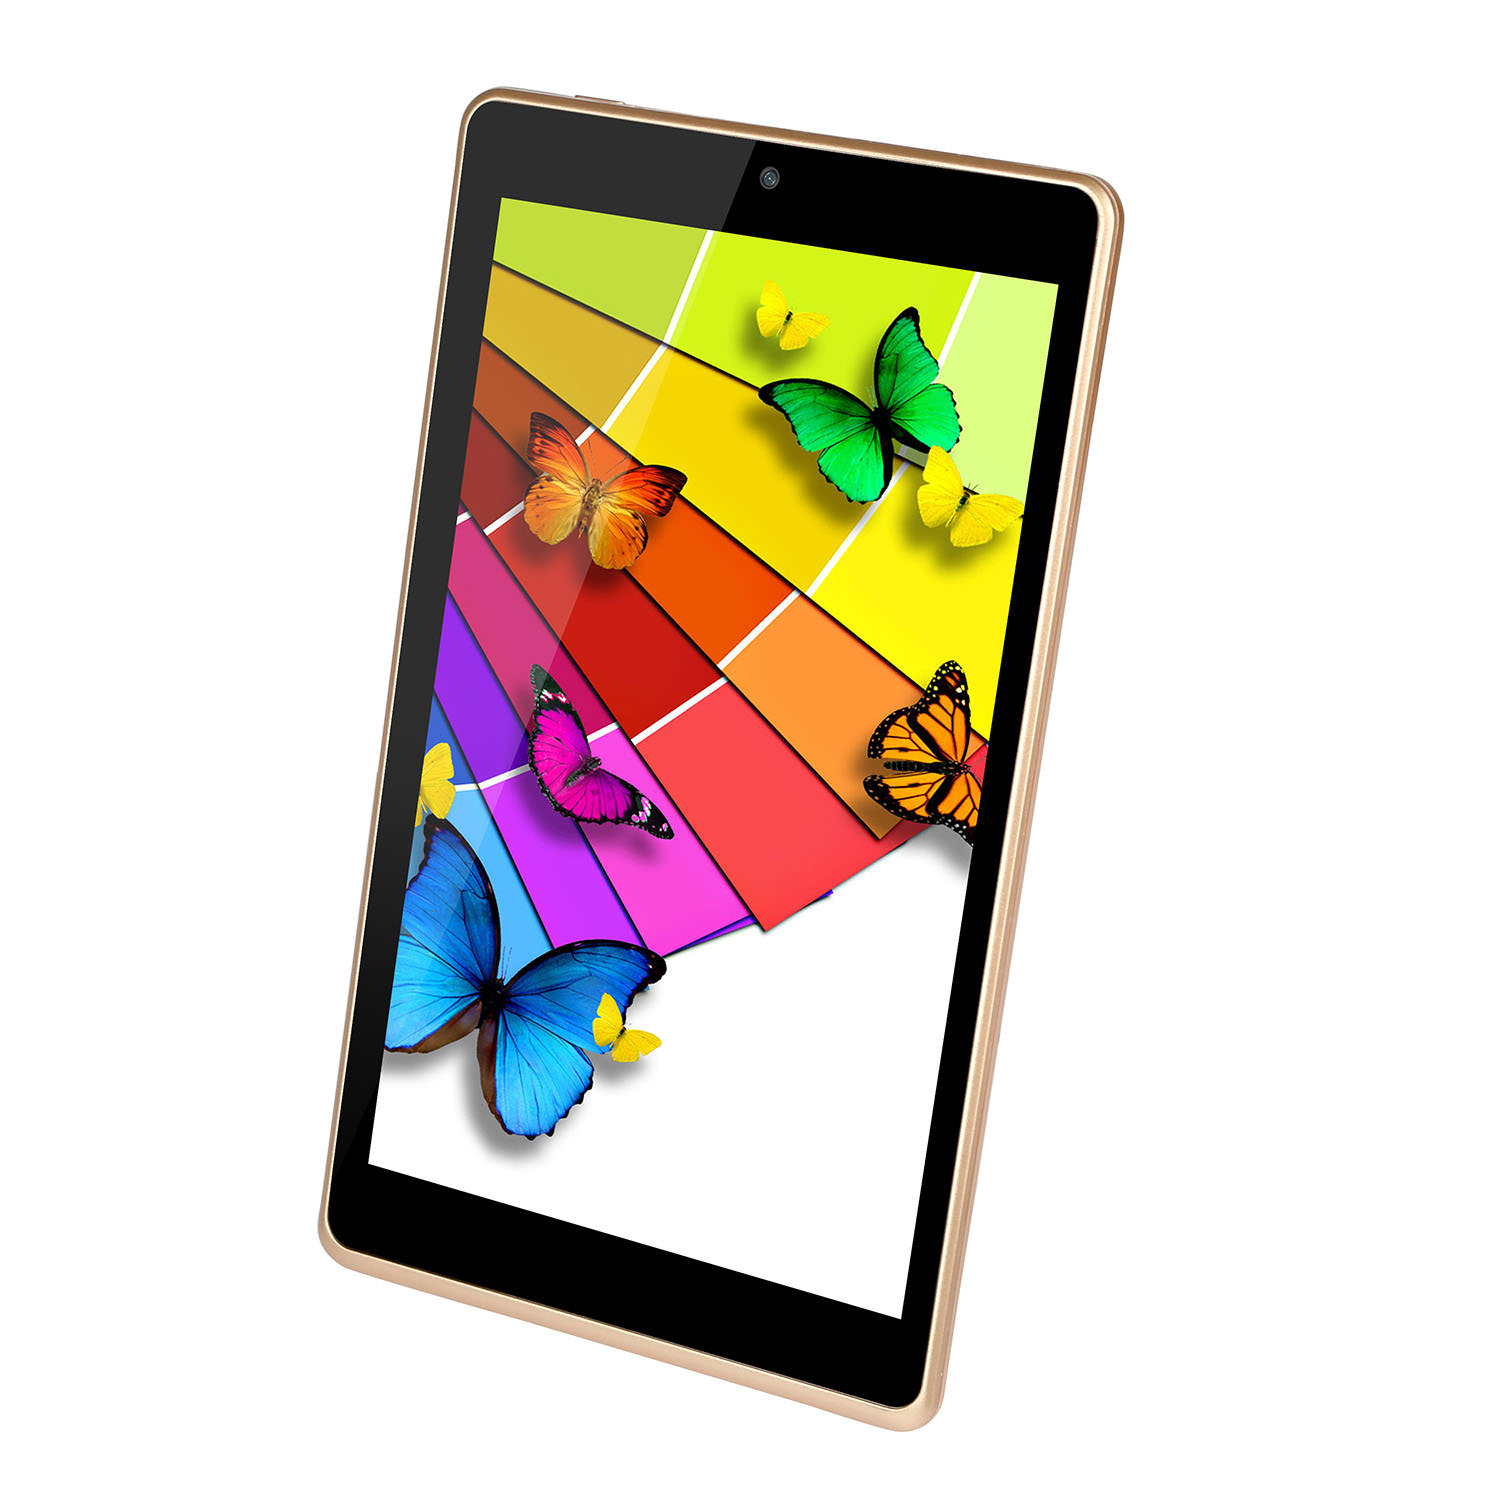 "KOCASO MX810 Android 6.0 Quad-Core 16GB Memory 8"" Multi-touch Screen Tablet with BT 4.0 (Gold)"